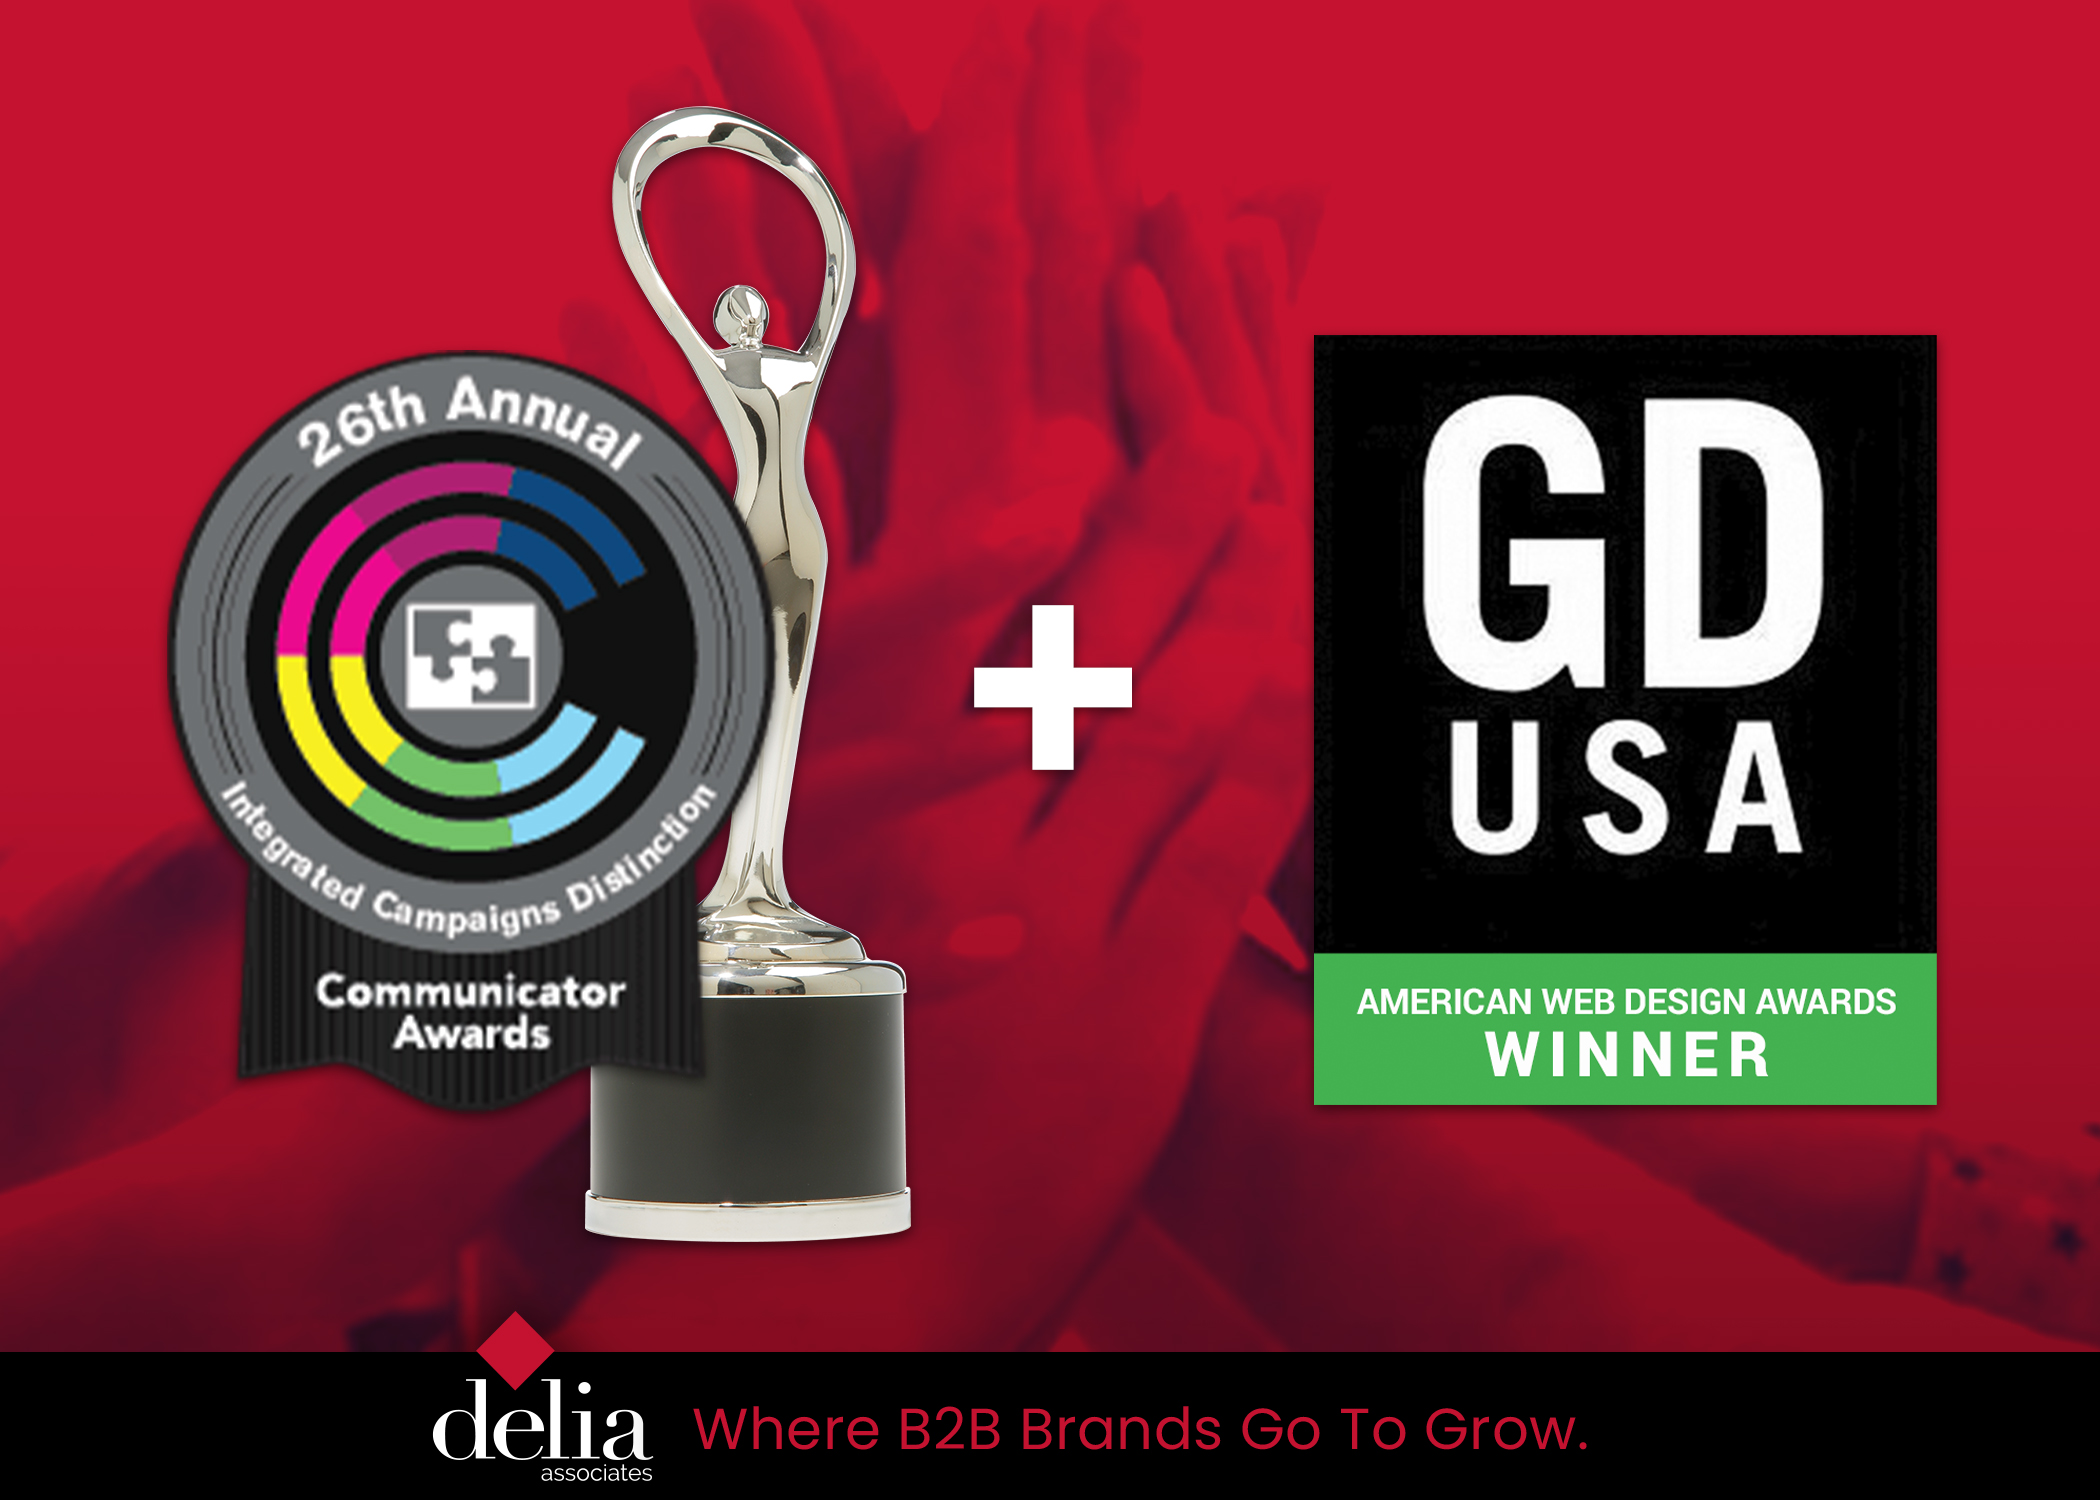 New Jersey Based Business Branding And Marketing Firm Delia Associates Earns Top Industry Awards